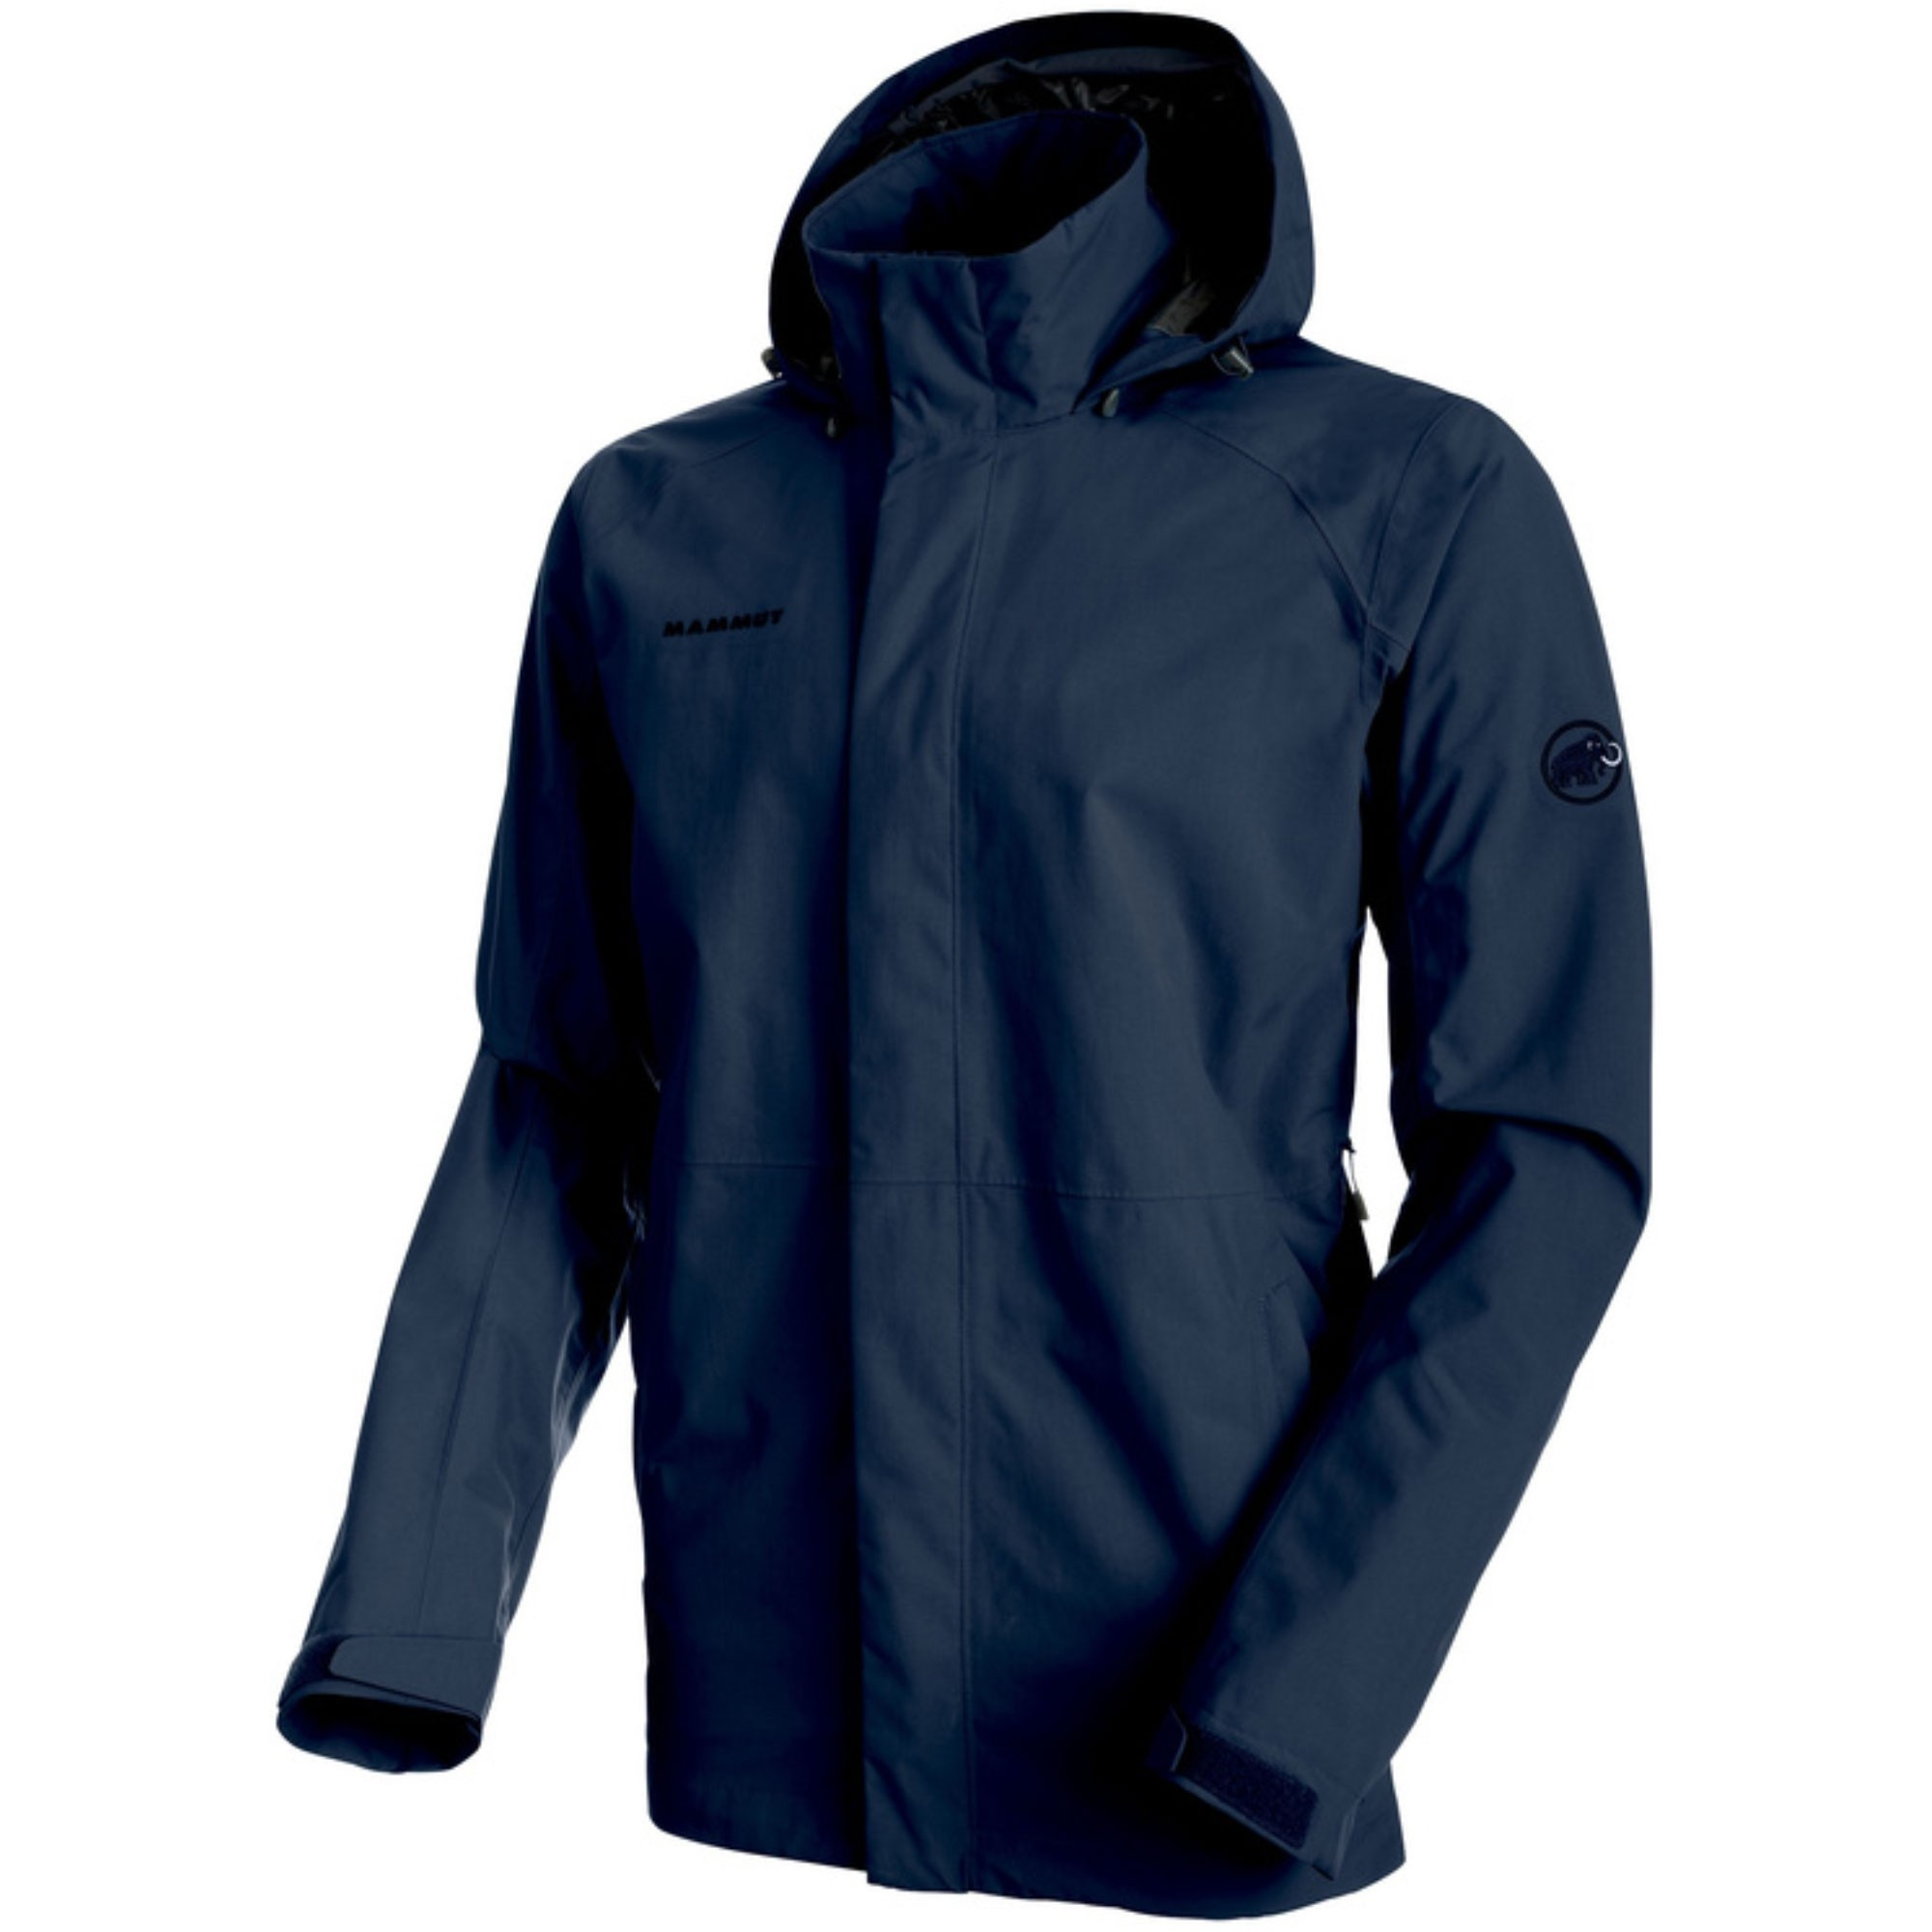 Mammut Trovat Tour HS Men's Jacket - Marine